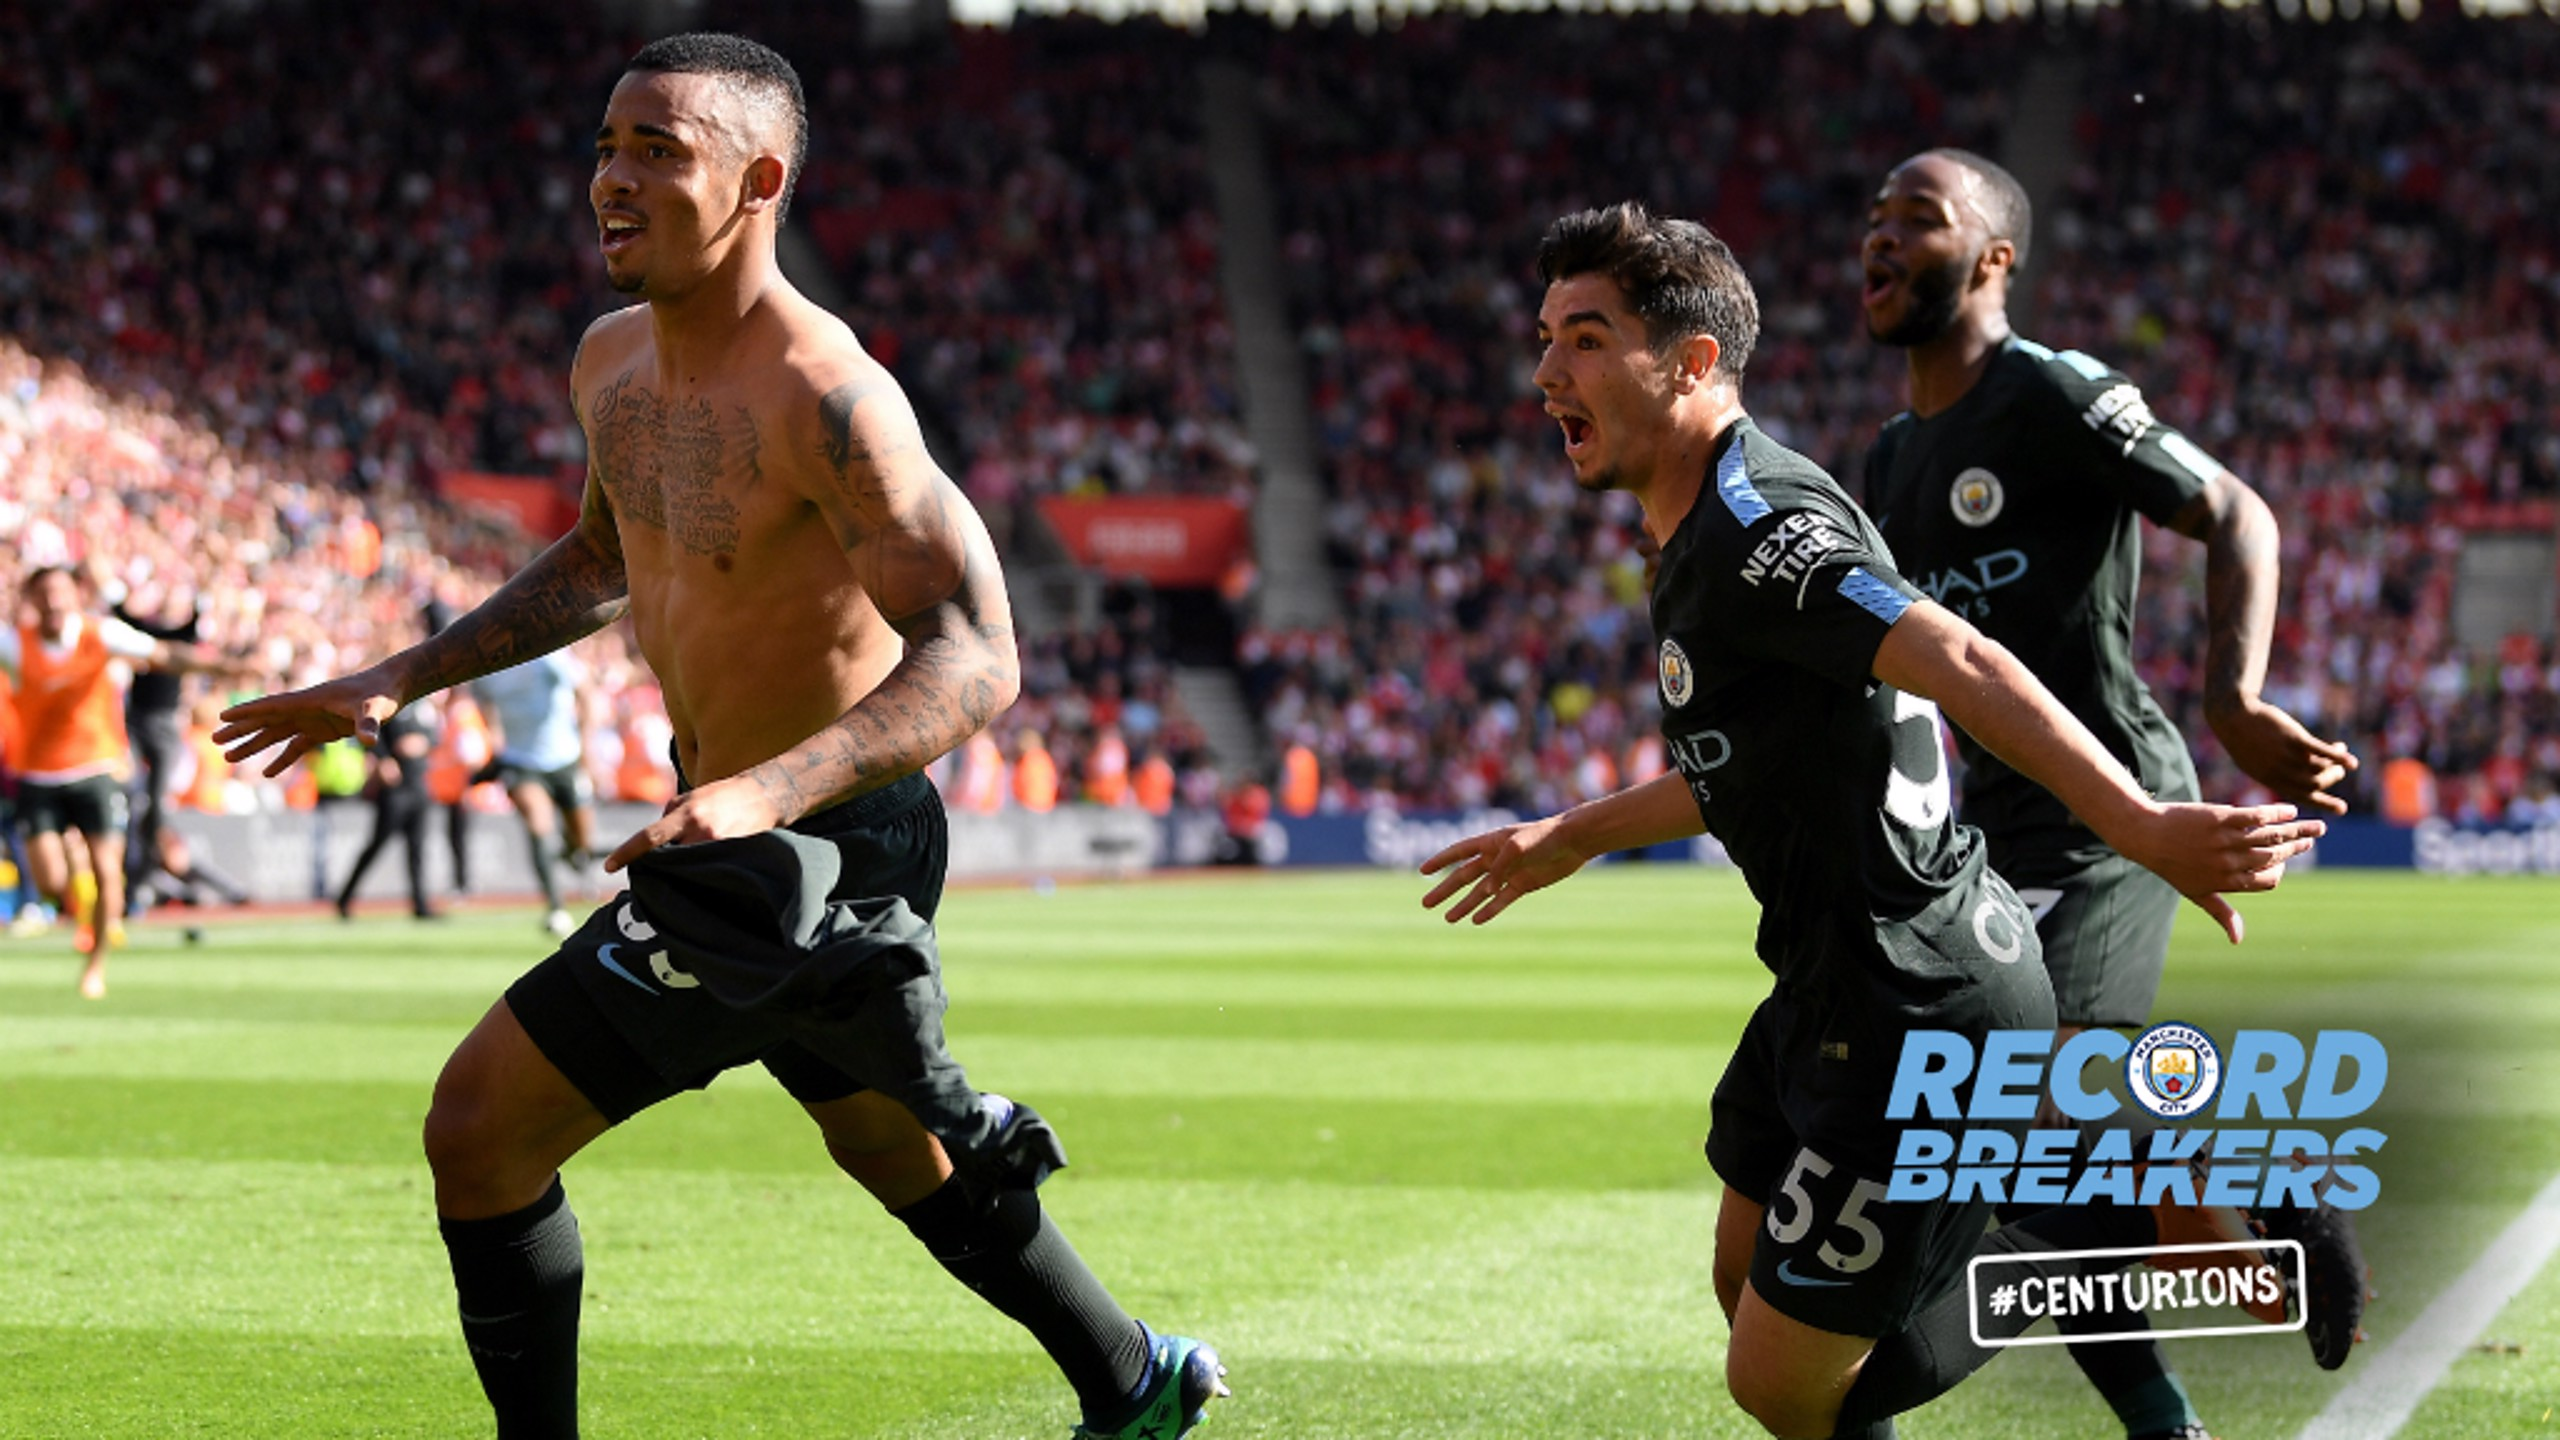 ELATION: Gabriel Jesus runs over to celebrate with the jubilant City fans